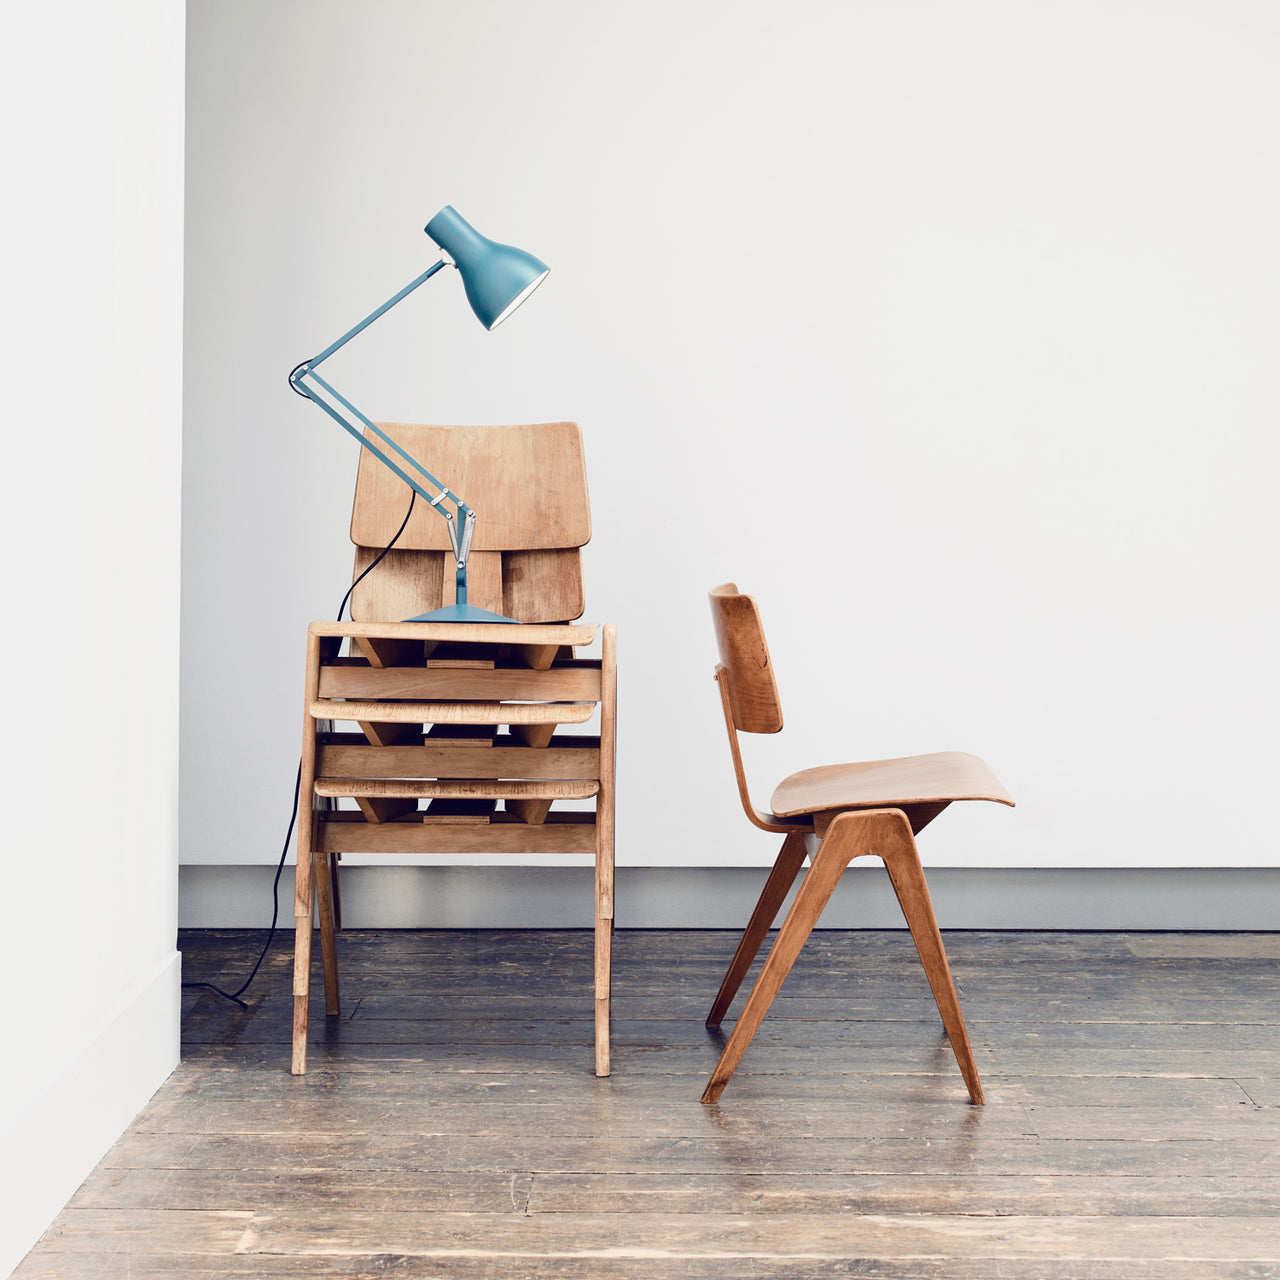 Type 75 Desk Lamp: Margaret Howell Edition